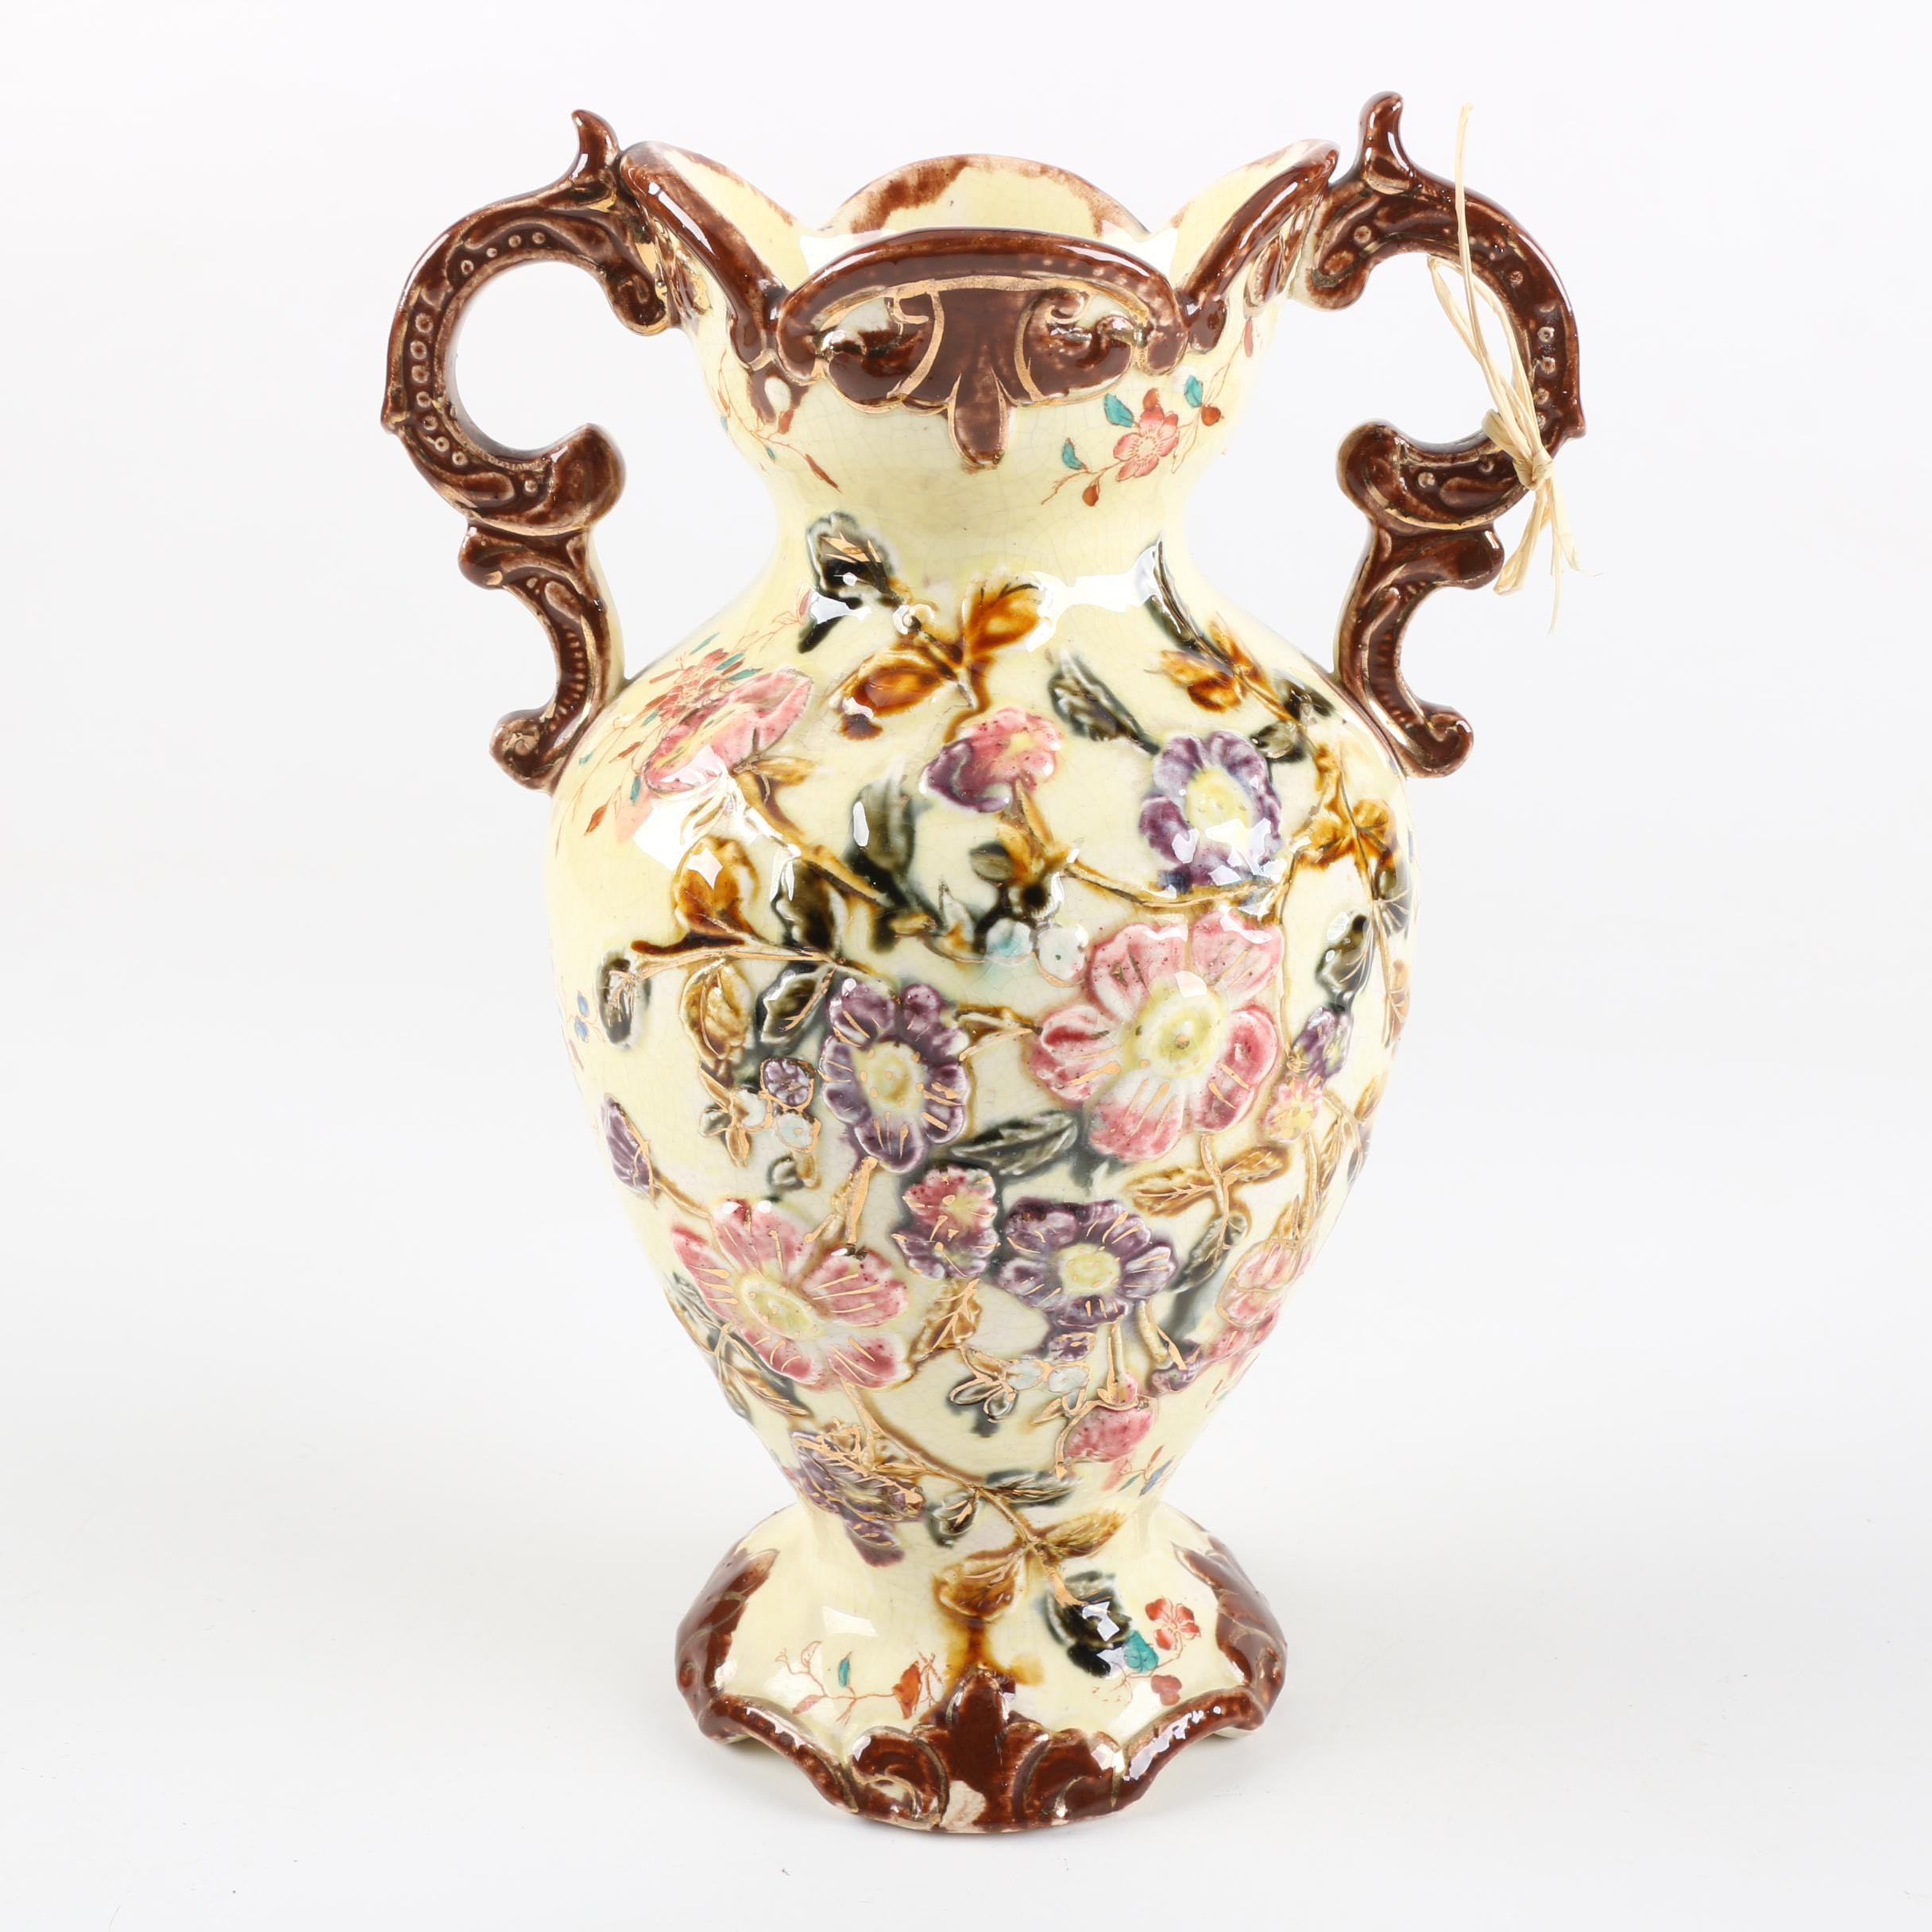 English Majolica Pottery Vase